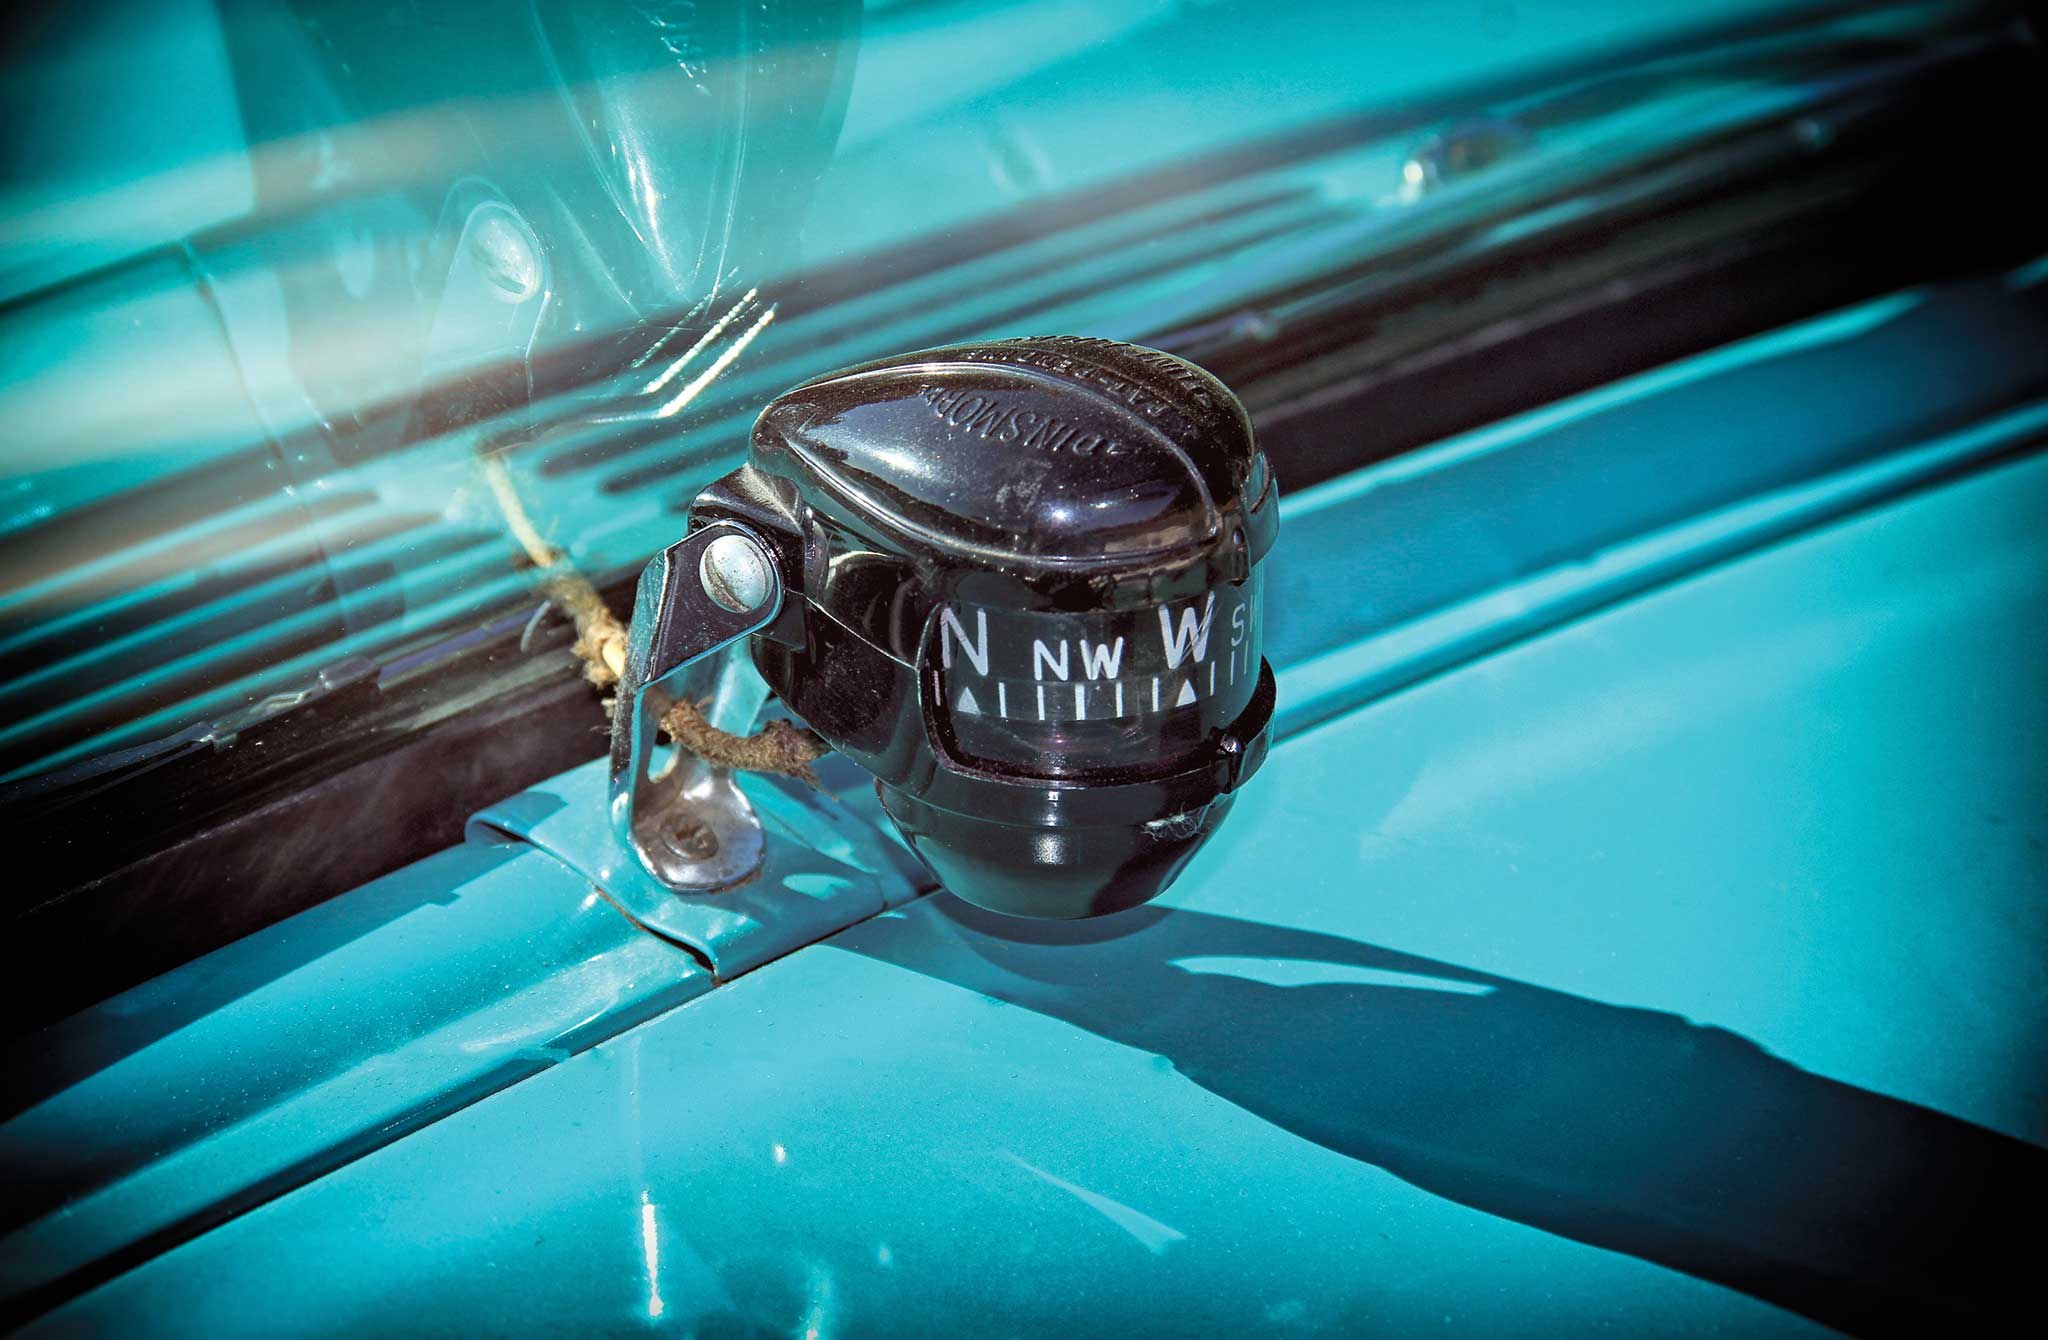 1955 chevy bel air convertible dash compass 003